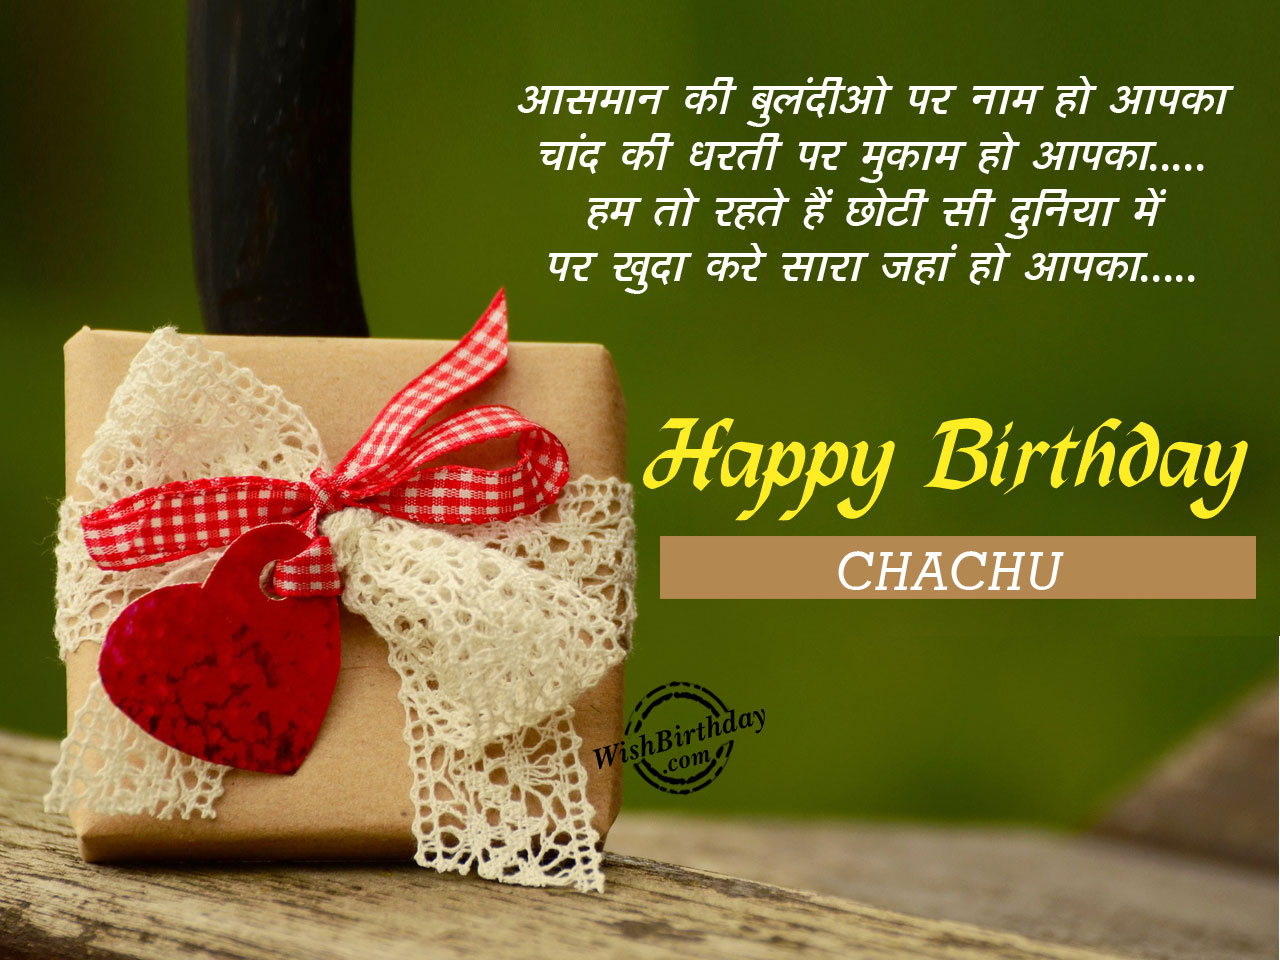 birthday wishes for chacha ji birthday images pictures